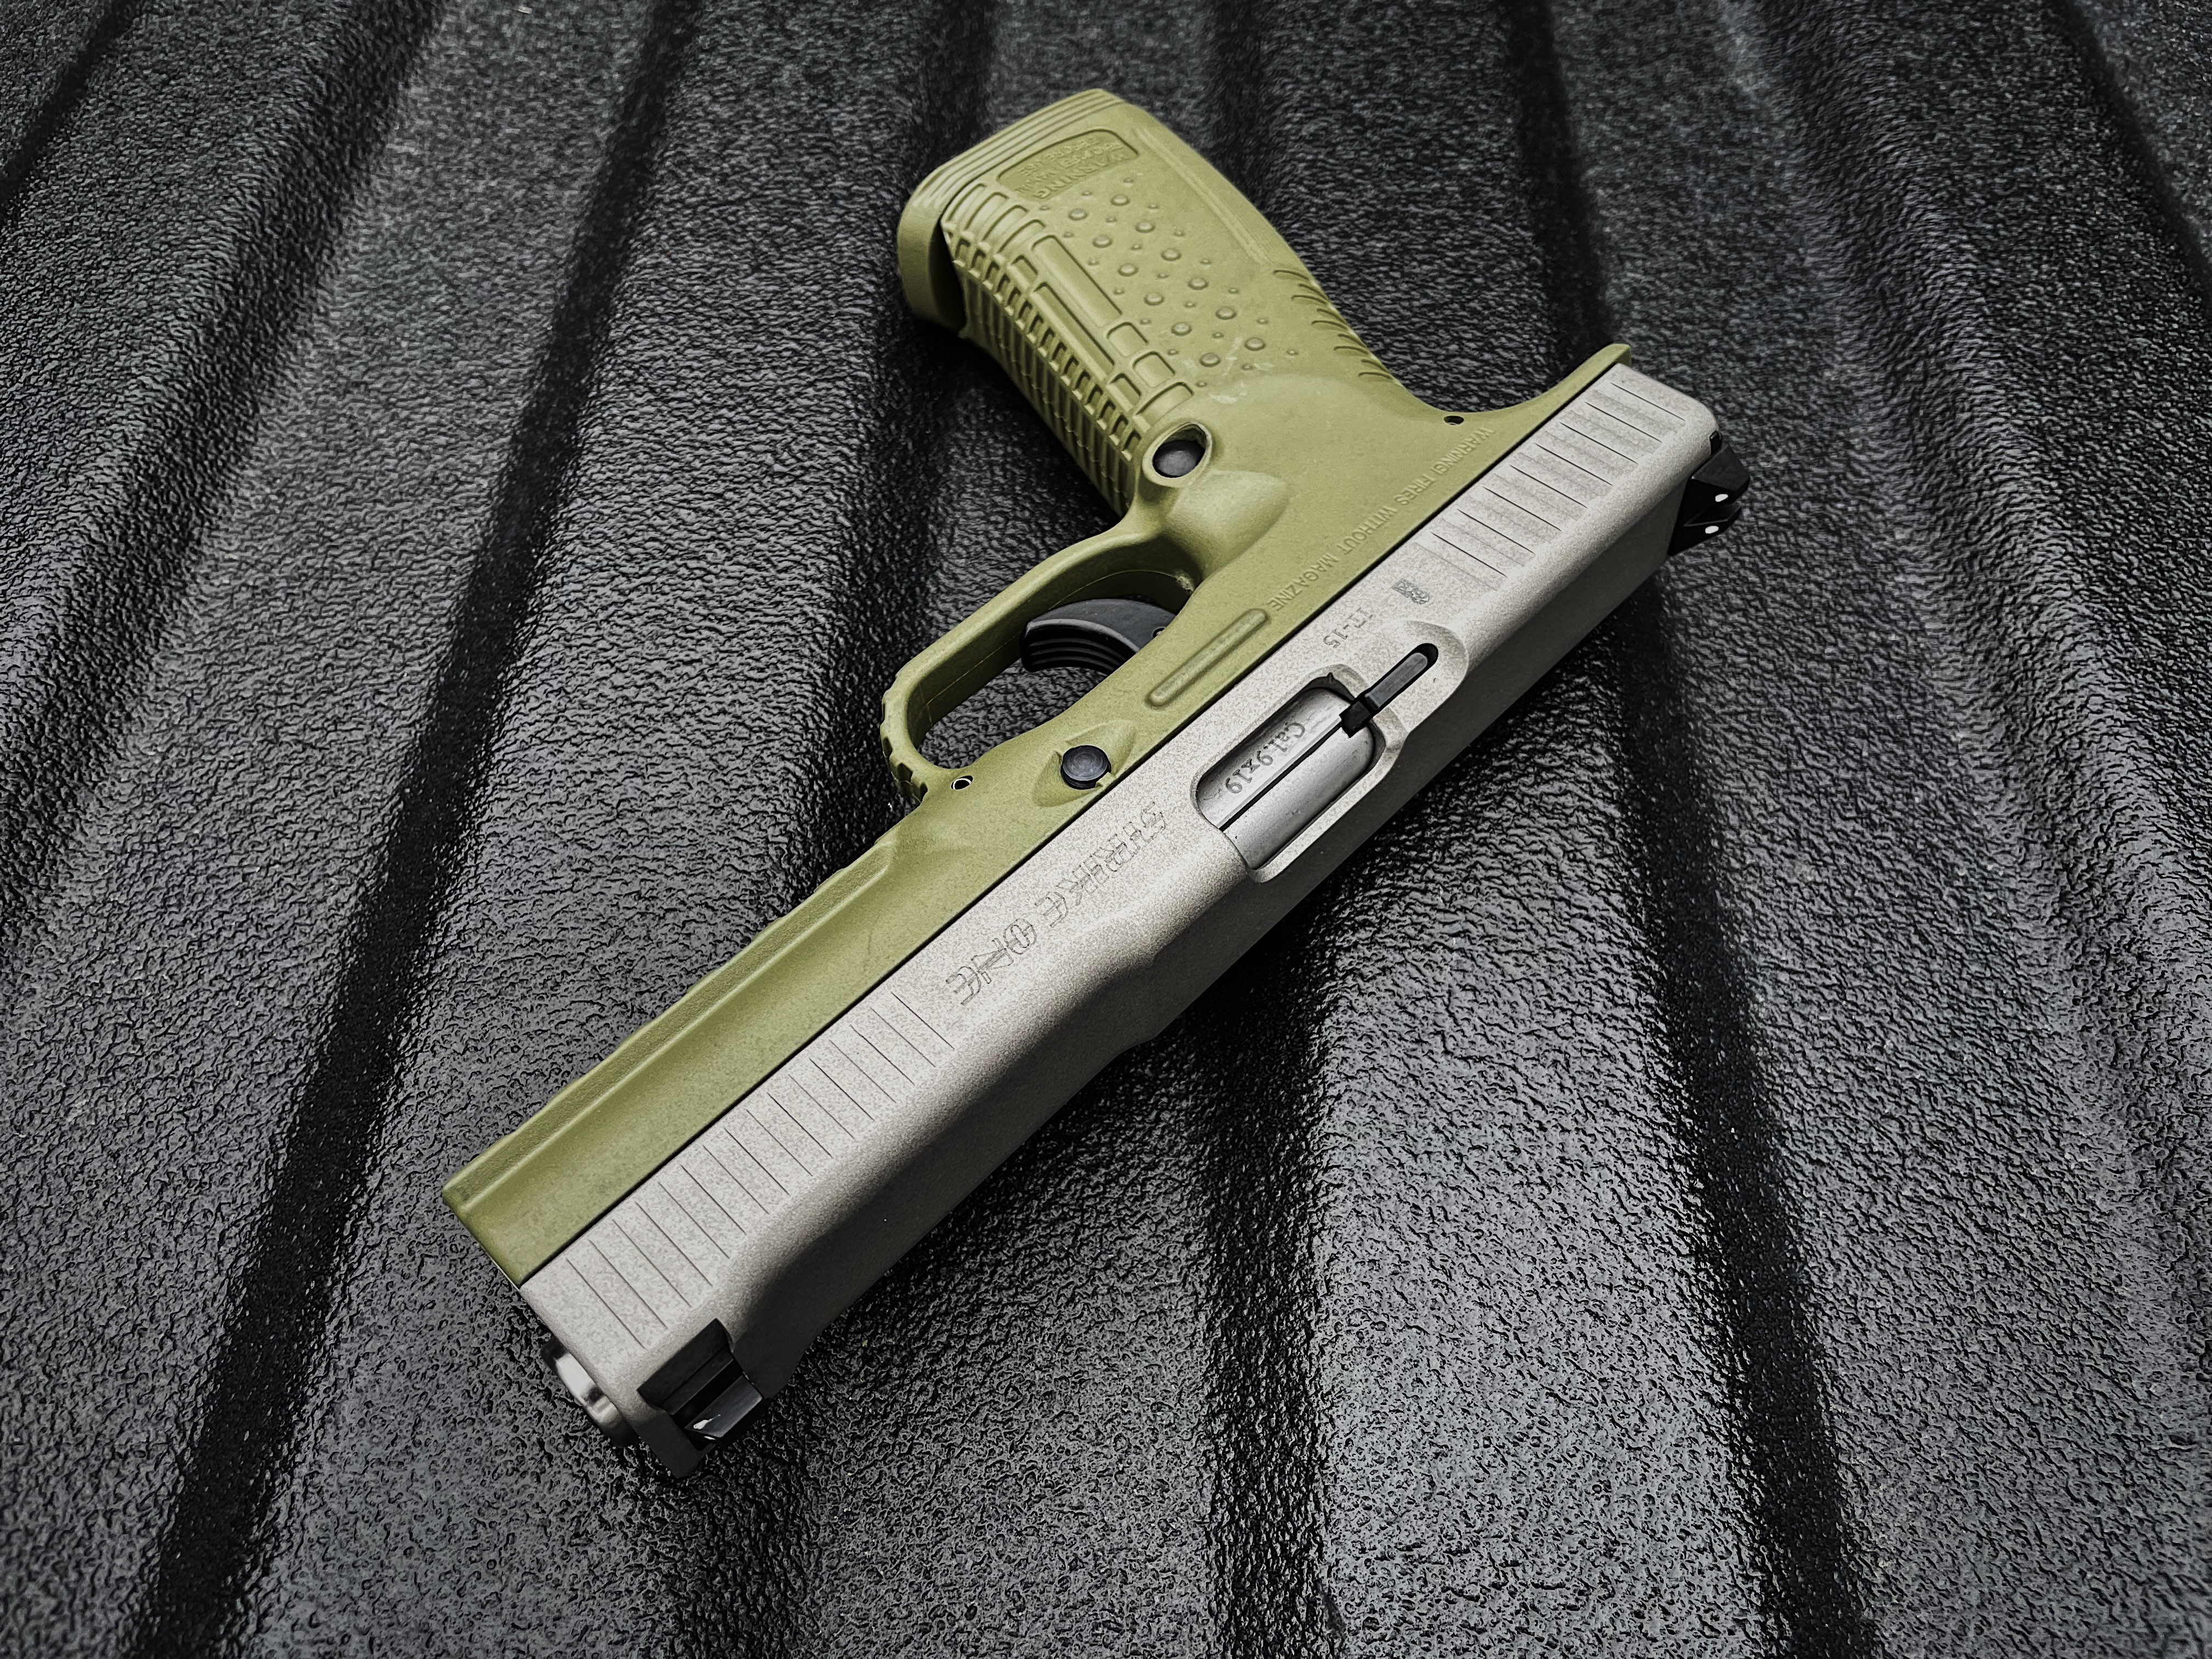 Strike One - Green and Stainless